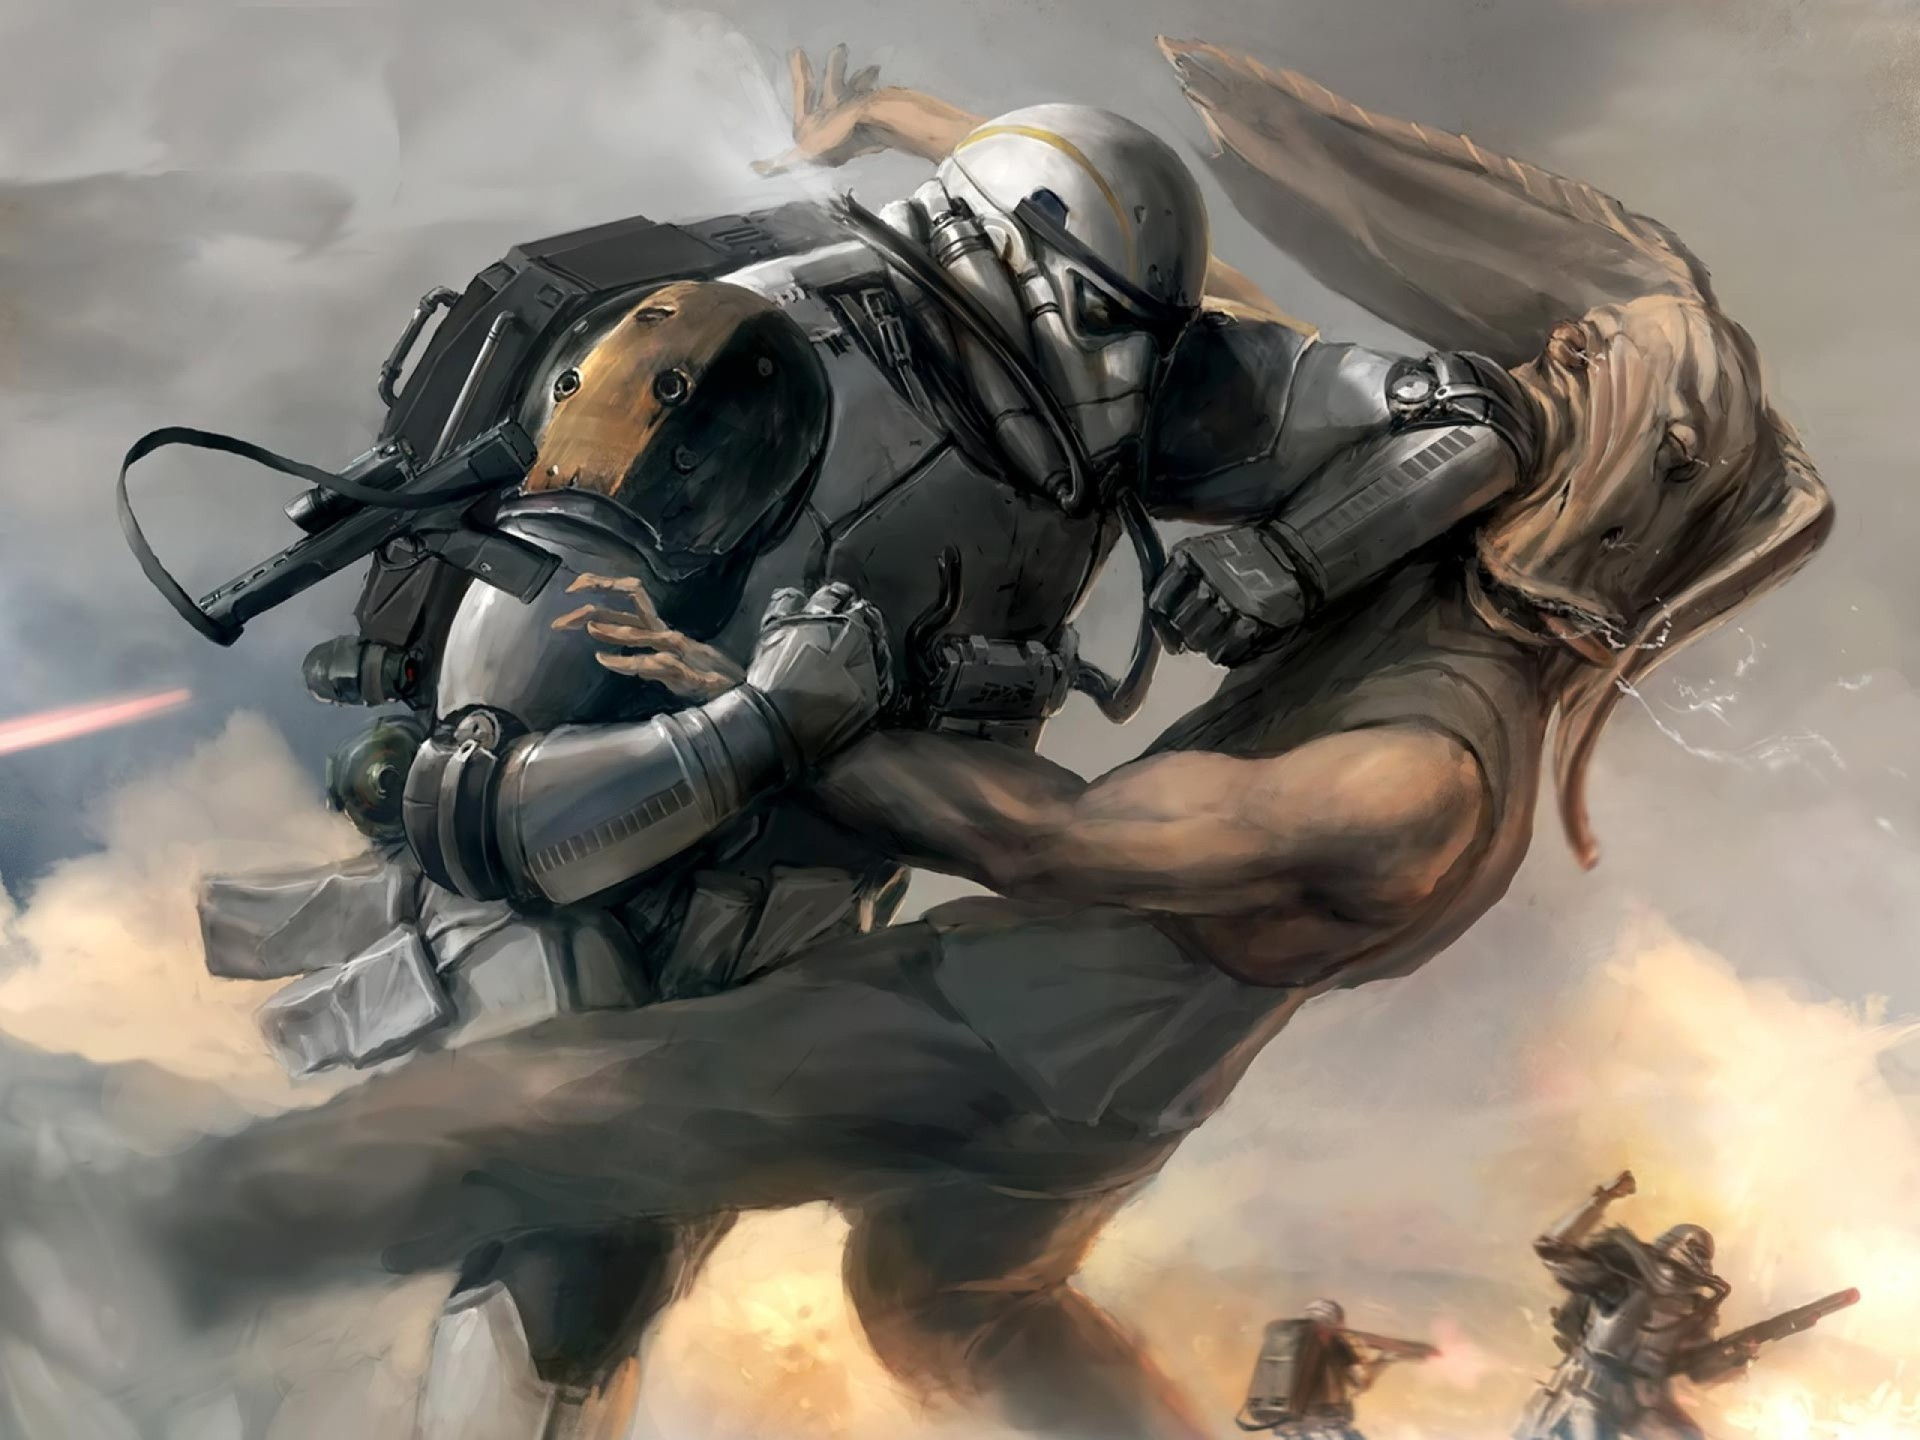 Star Wars The Clone Wars Wallpaper: Star Wars Clone Trooper Wallpaper ·① WallpaperTag